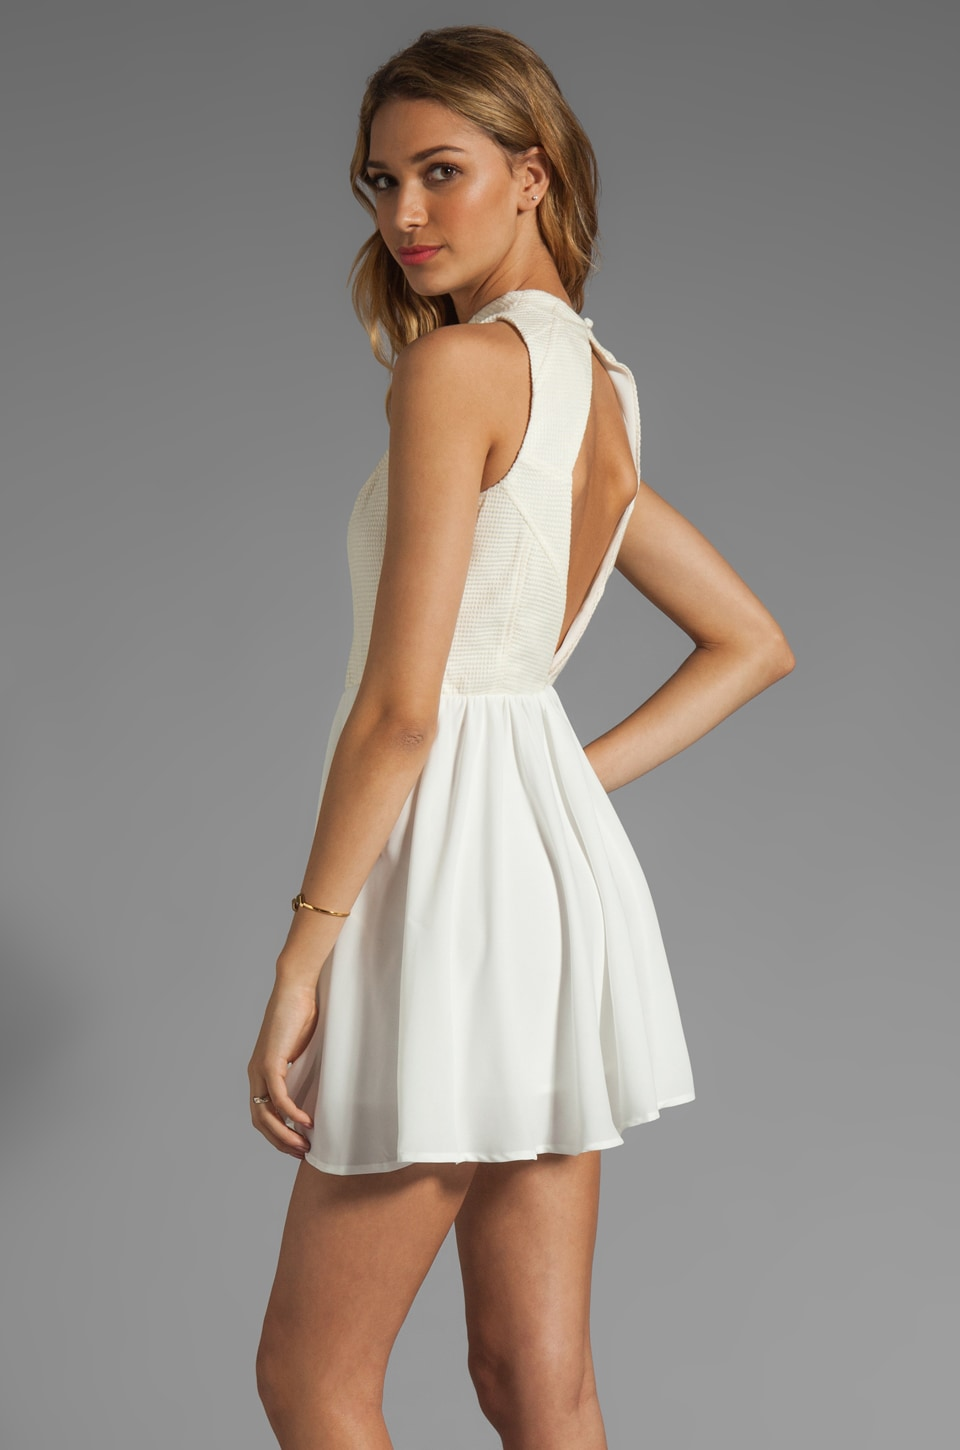 keepsake No Secrets Dress in Ivory/Ivory